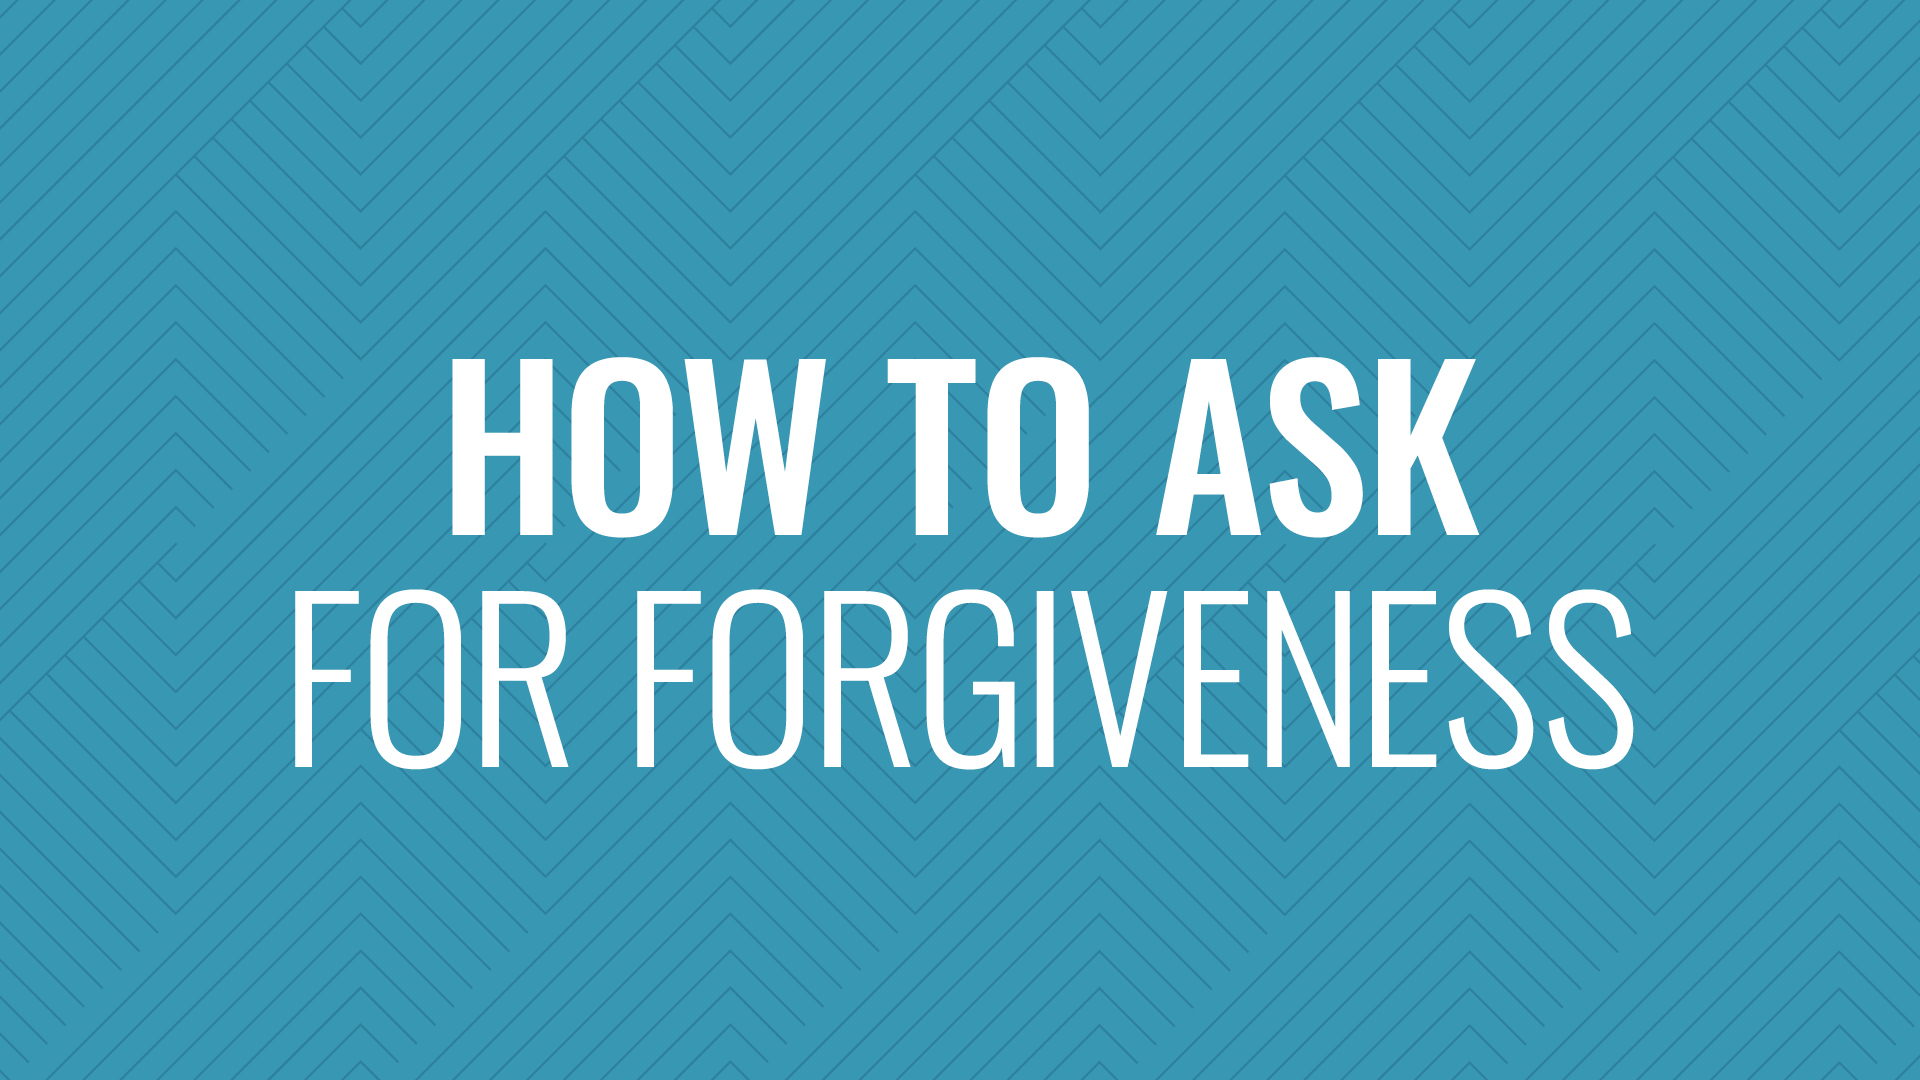 How to Ask for Forgiveness Hero Image